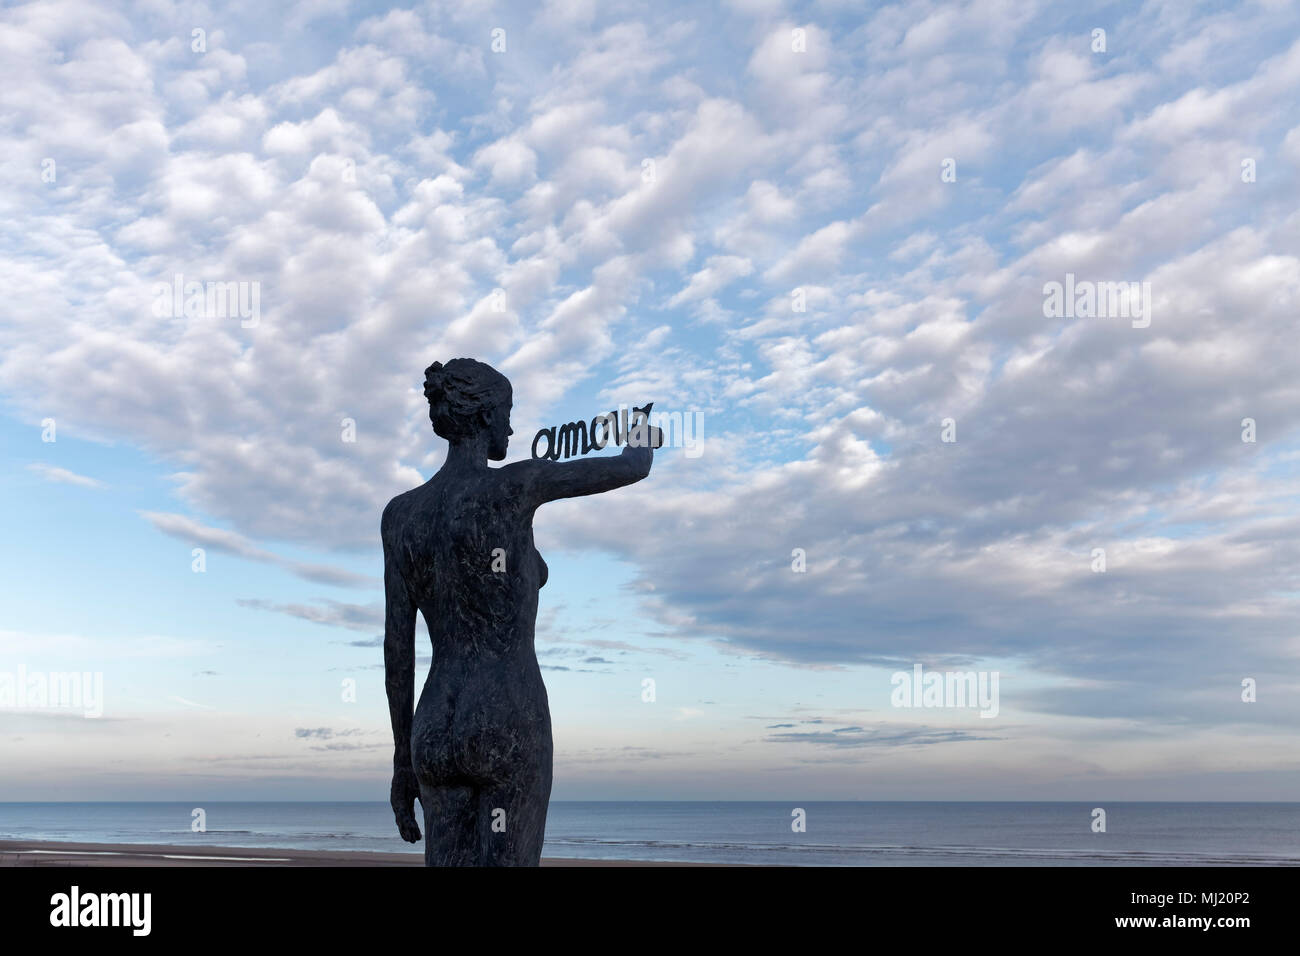 Woman writes French word Amour, Love, in the sky, bronze sculpture by Belgian sculptor Linde Ergo, De Haan, North Sea - Stock Image